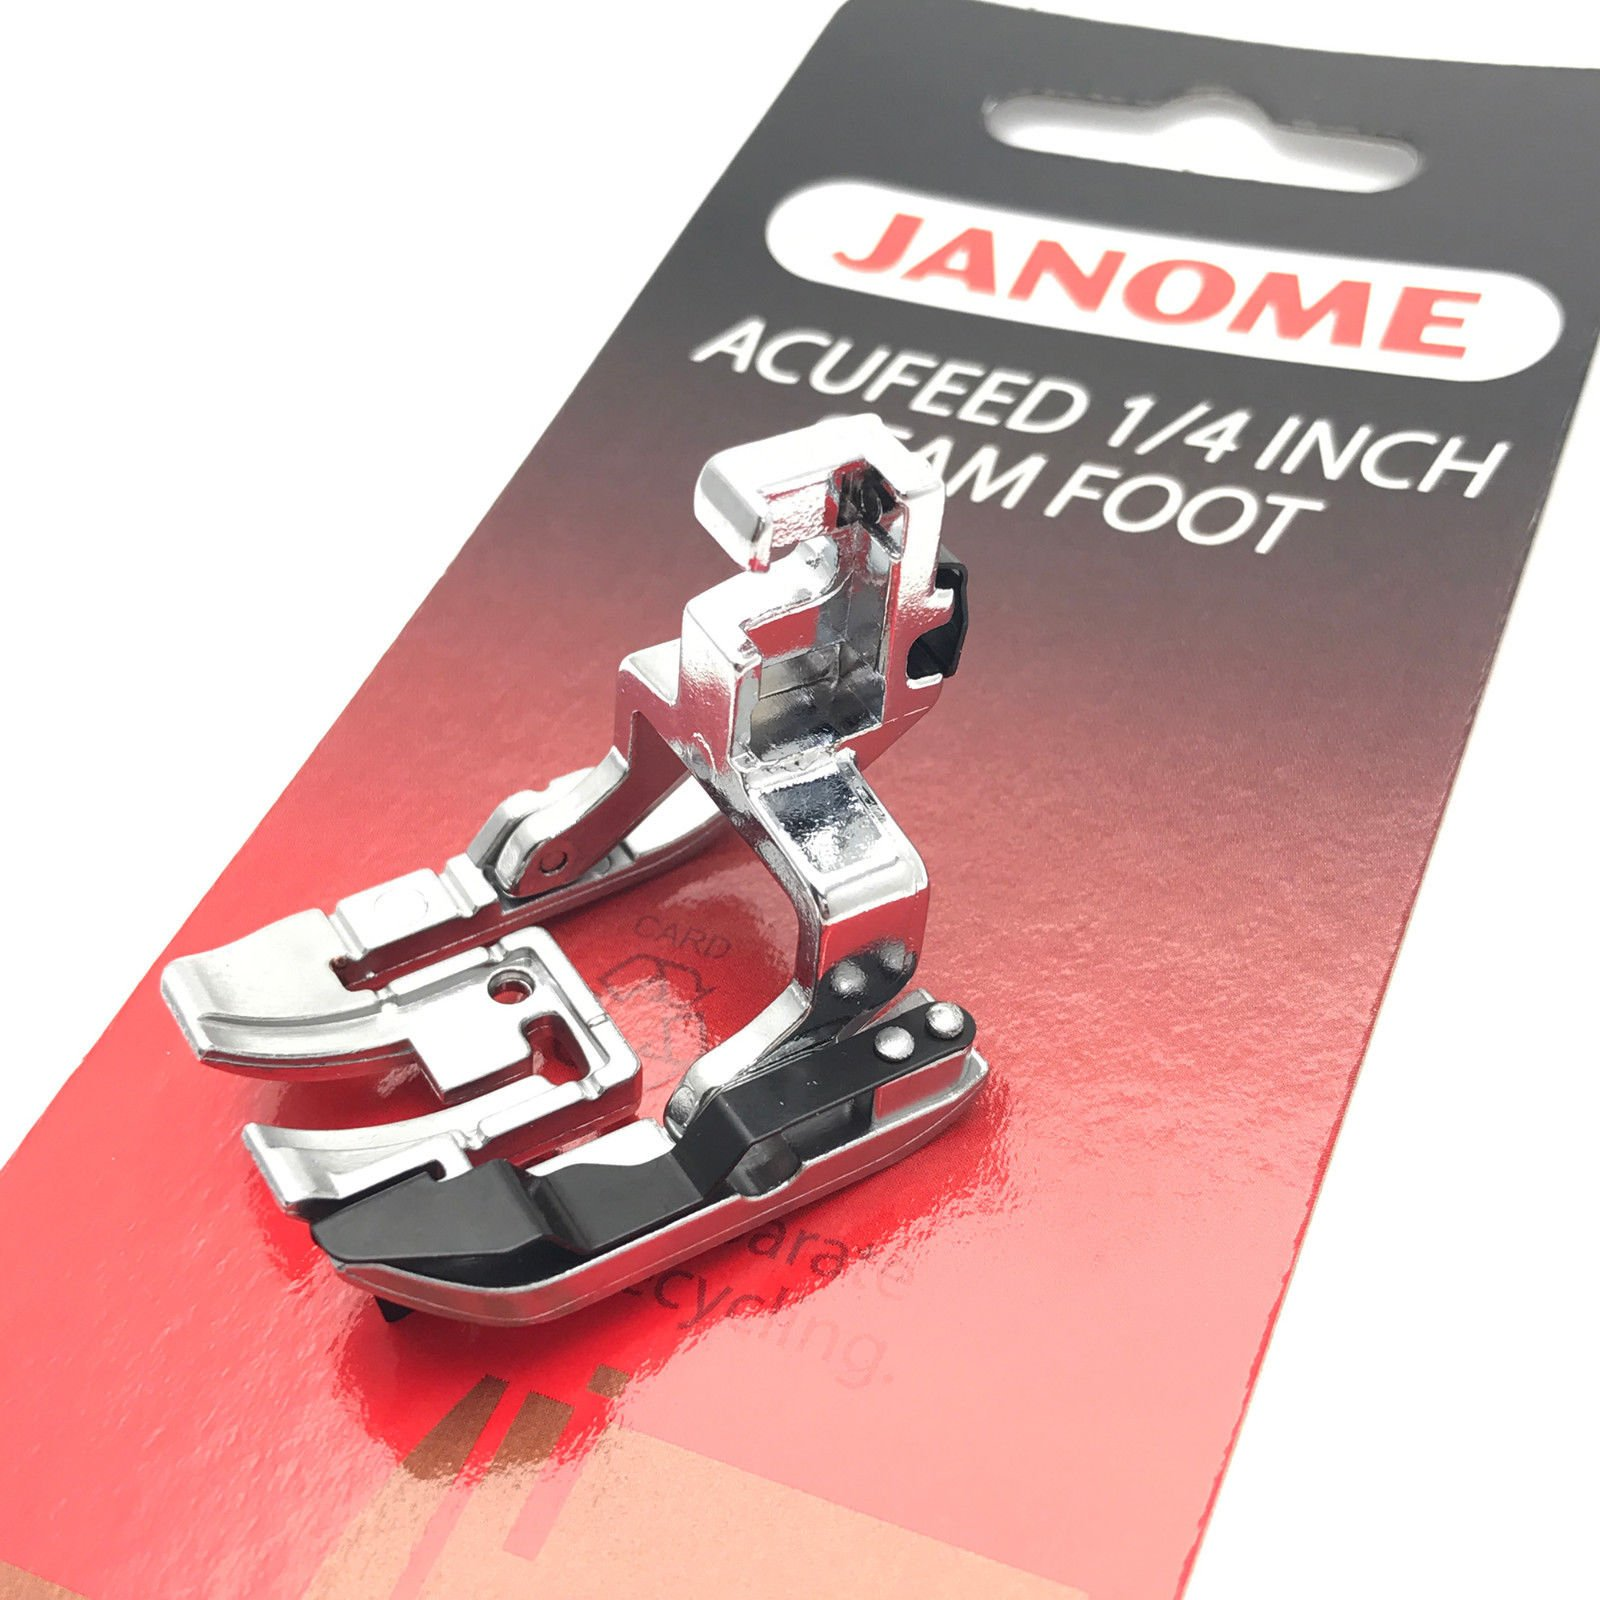 Janome Acufeed 1/4'' Seam Foot for MC7700 &6600 by Janome